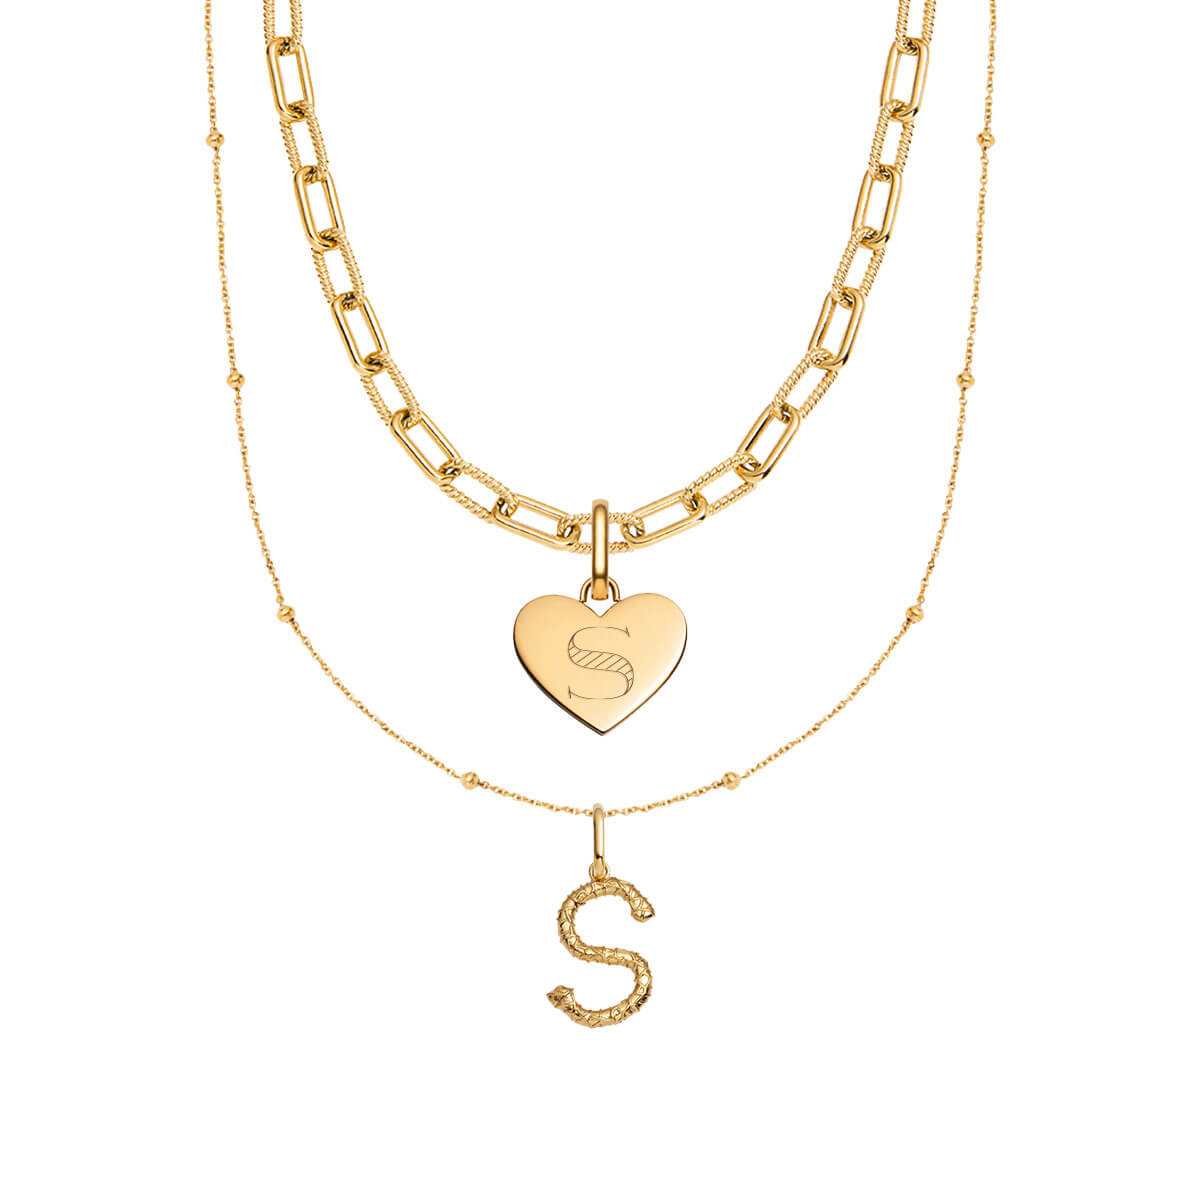 Foil Letter & Heart Square Link Chain Layered Set (Gold)